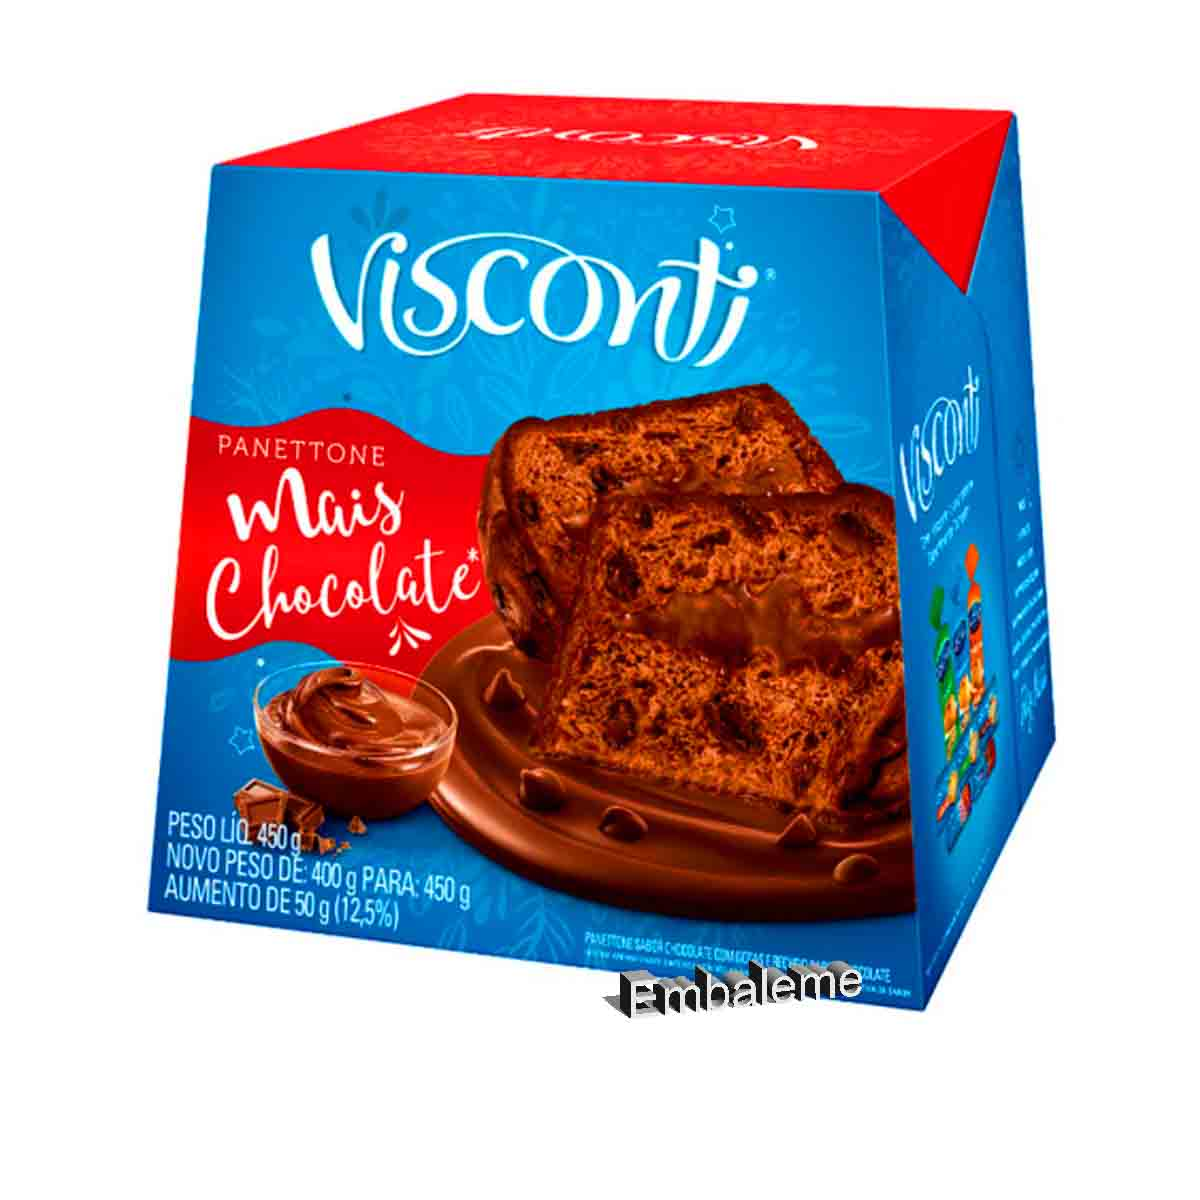 Panetone Mais Chocolate 450G Visconti